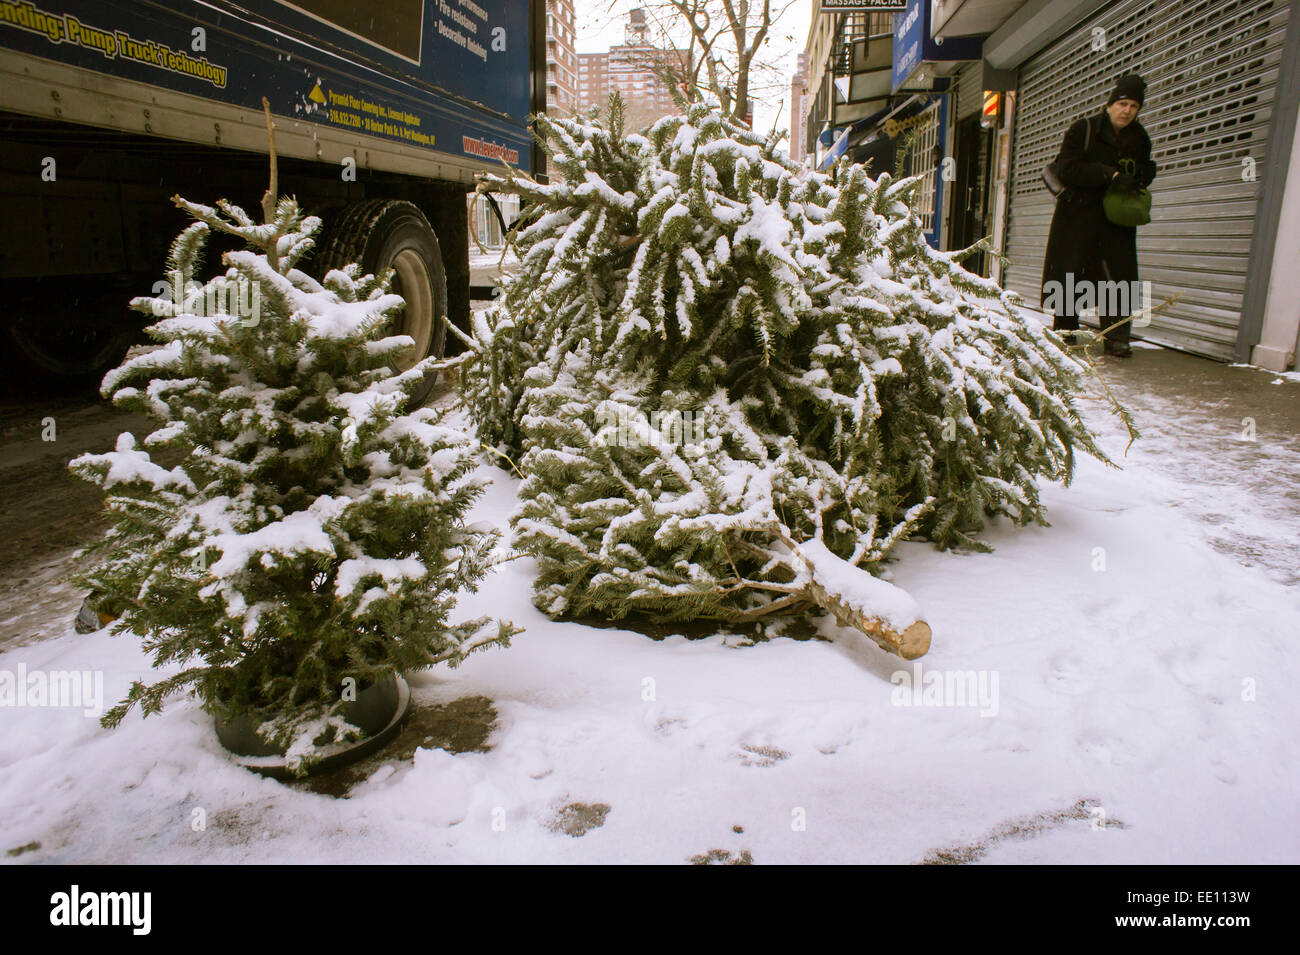 Discarded Christmas trees, properly devoid of tinsel and ornaments ...